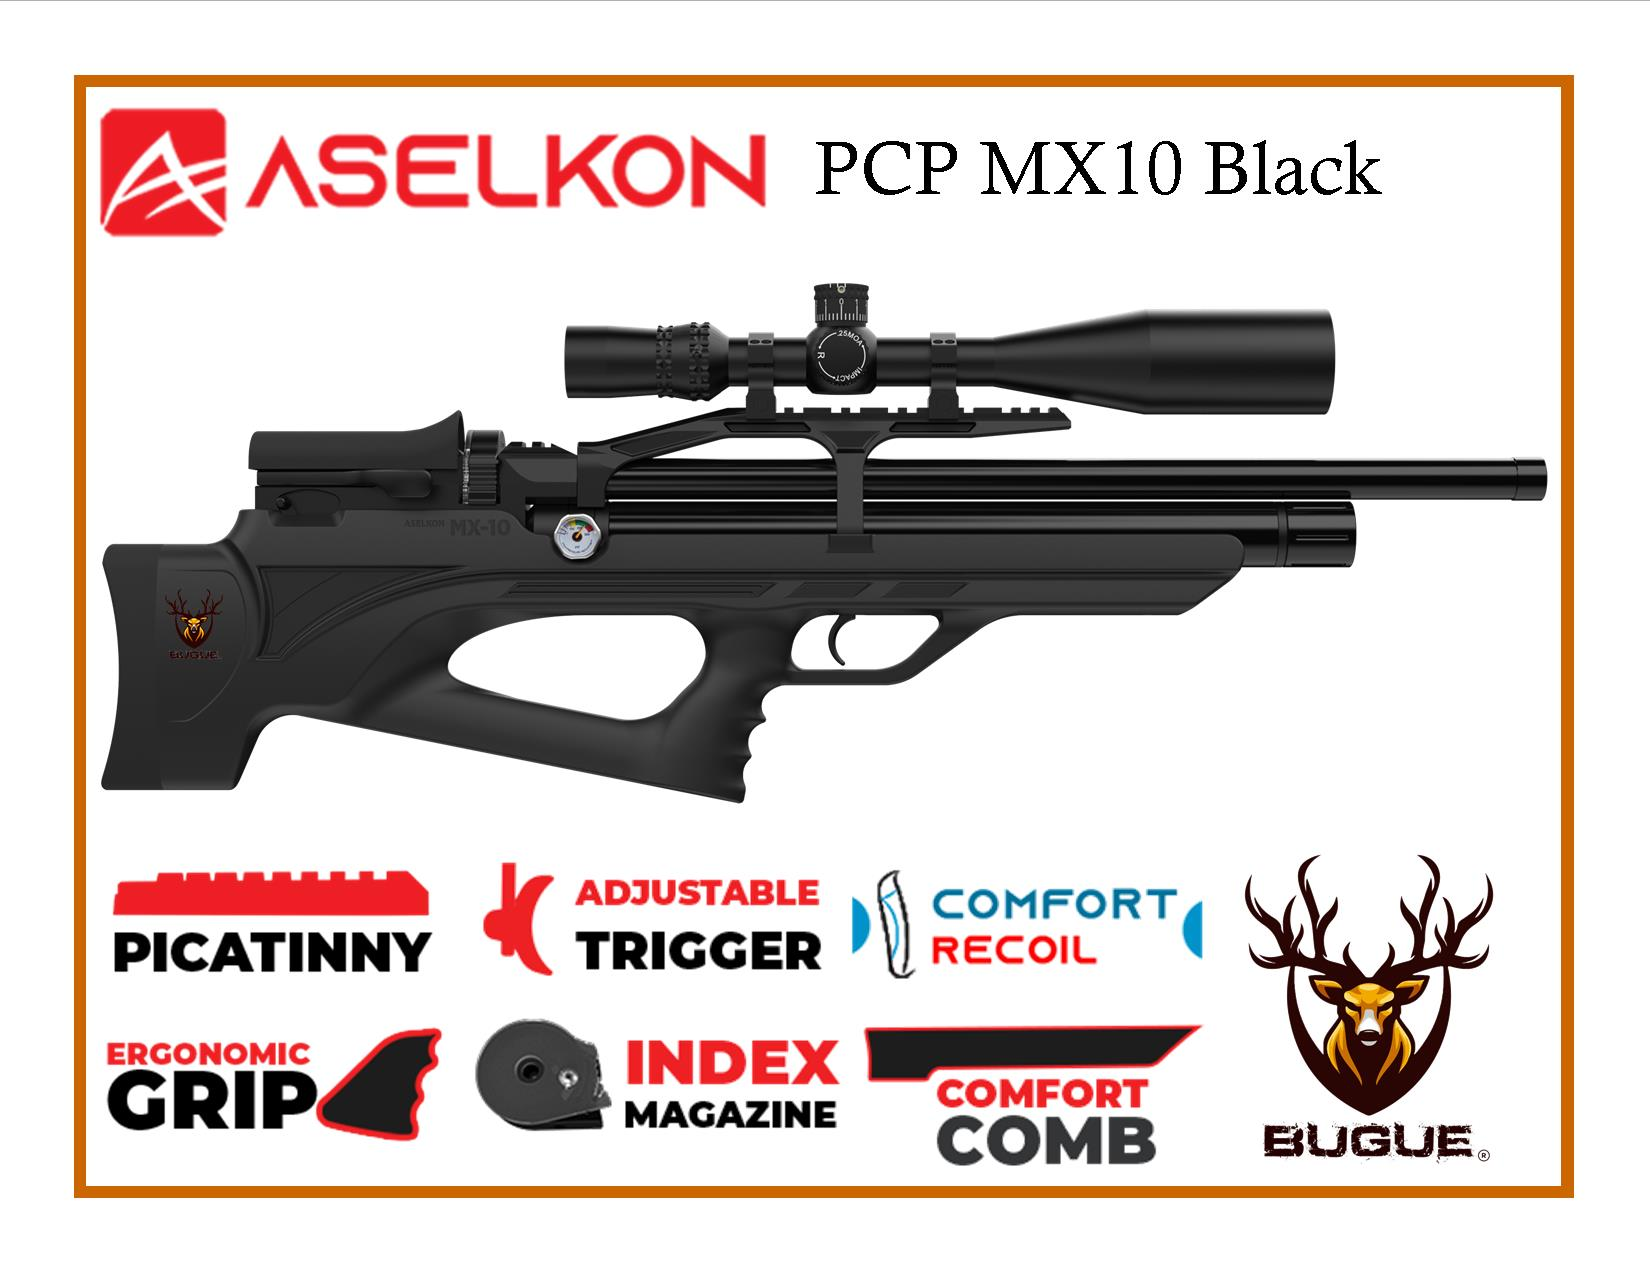 RIFLE PCP ASELKON MX10 BLACK CALIBRE 5.5 MM